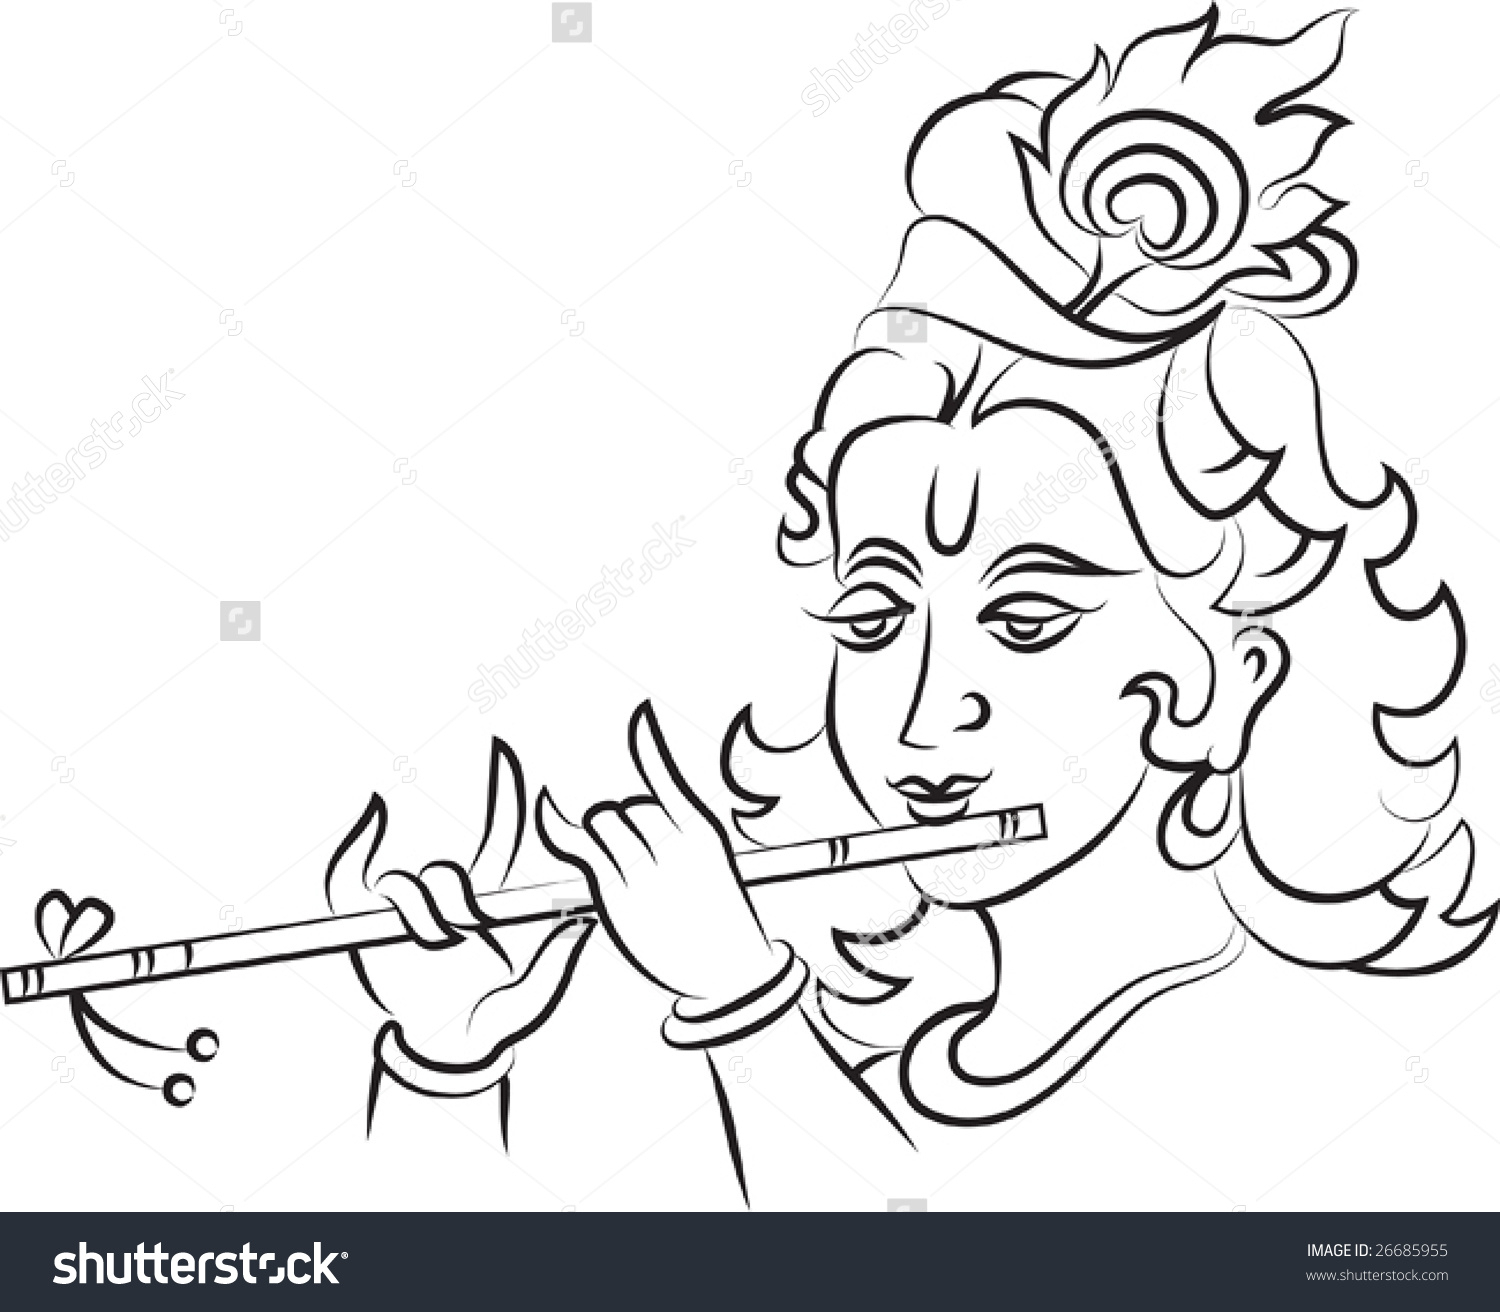 1500x1312 Easy Pencil Drawing Of Lord Krishna Simple Drawings Of Lord